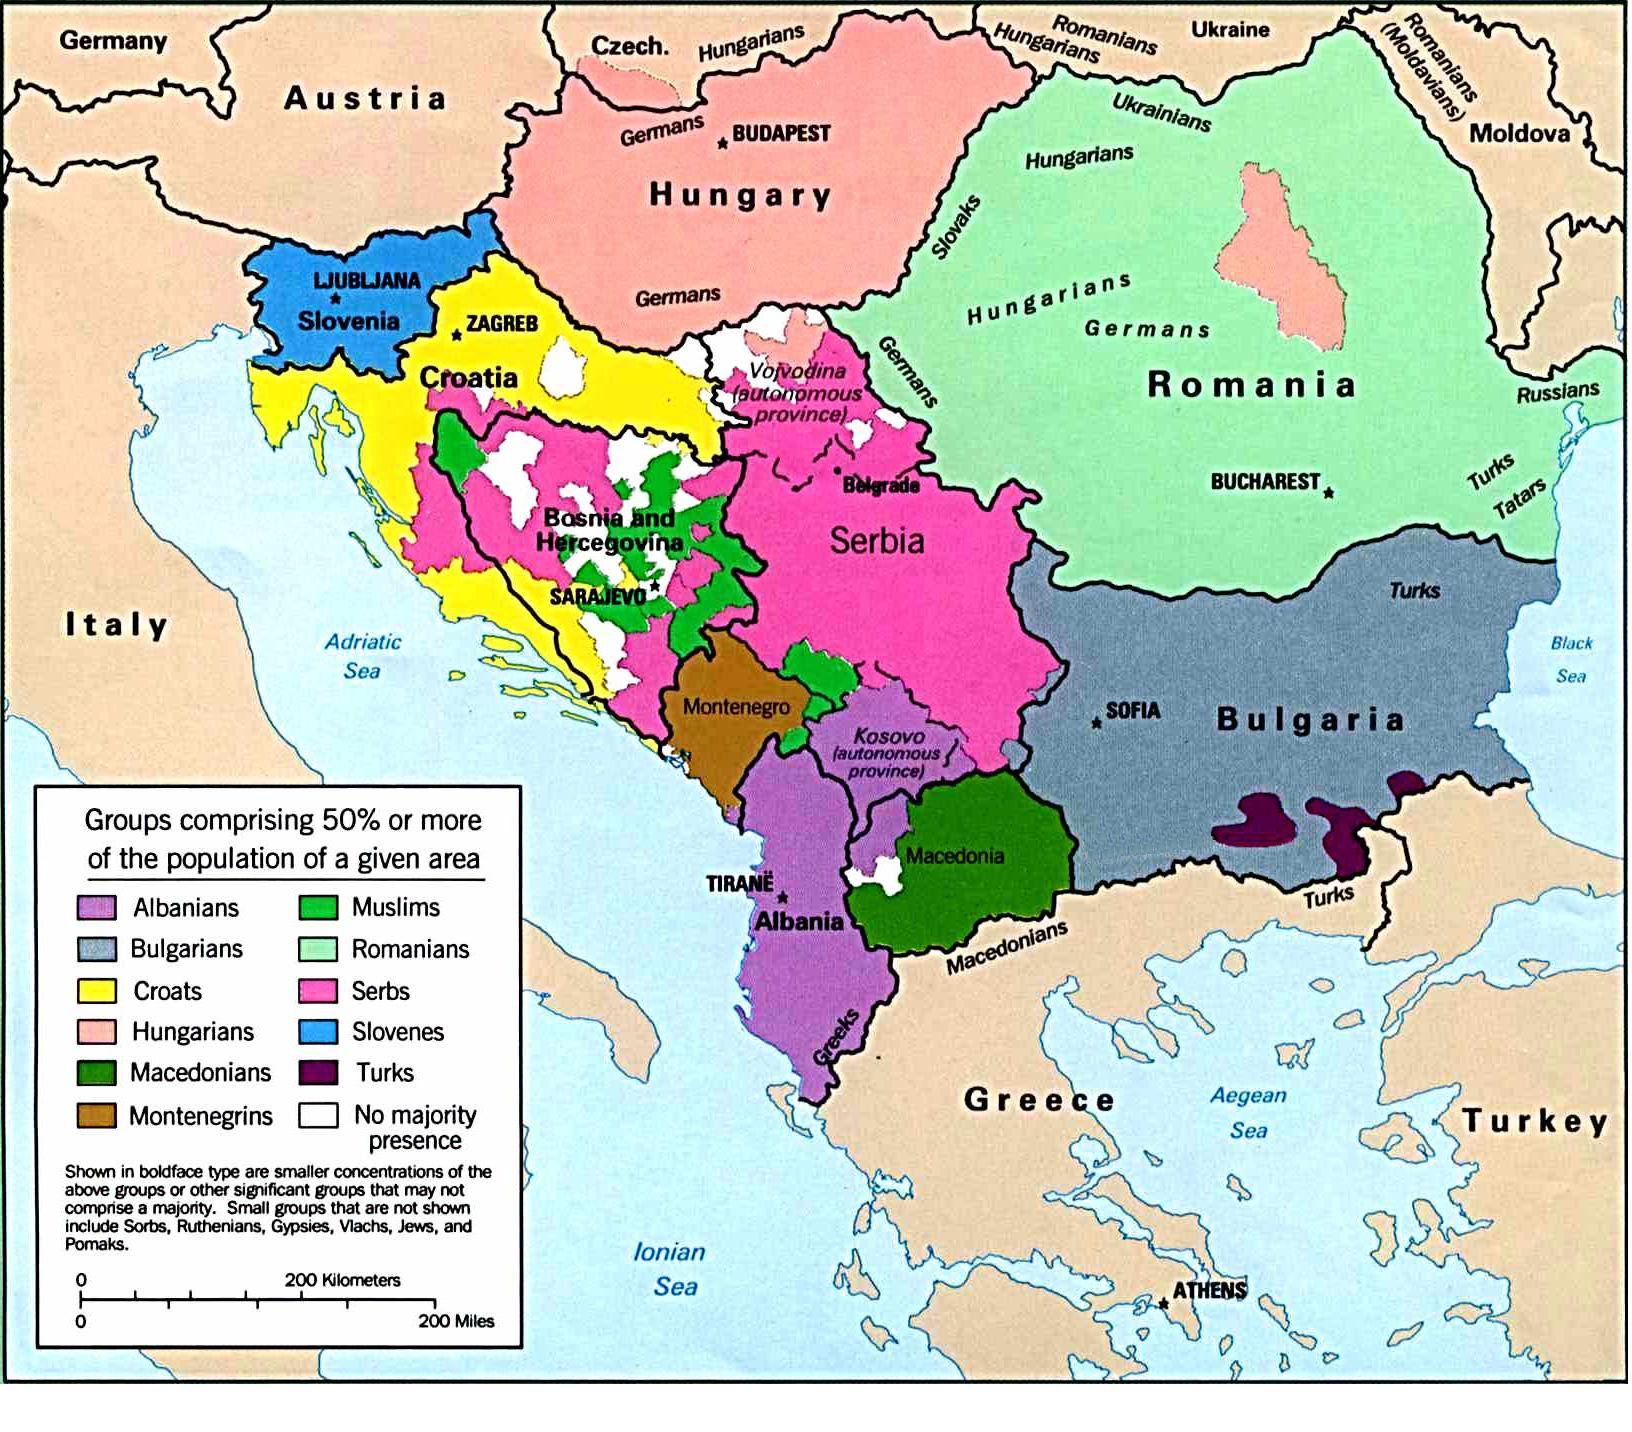 The Balkans, South Easter Europe